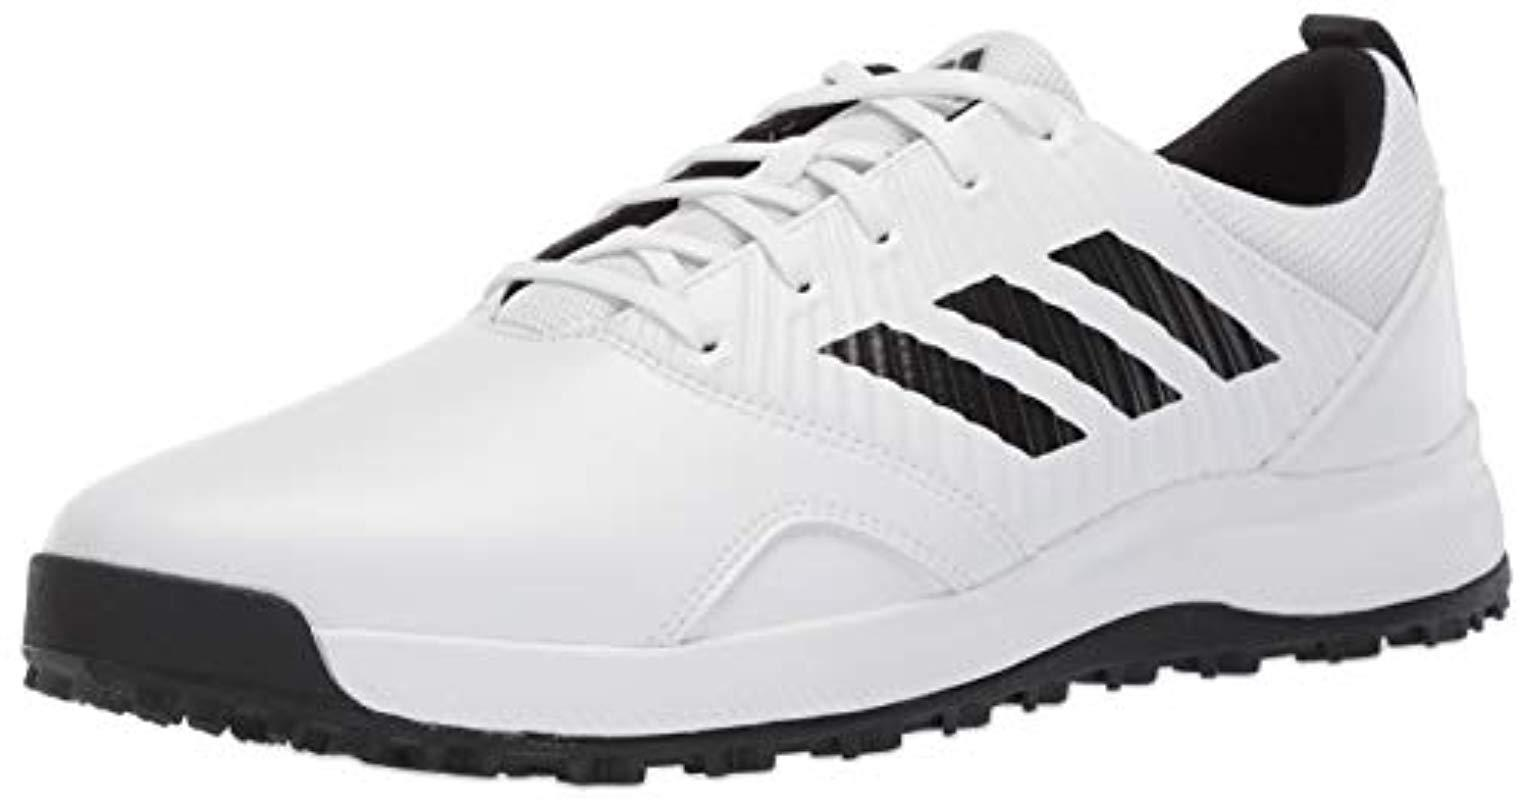 f871f6d8c0a0 Lyst - adidas Cp Traxion Sl Golf Shoe in White for Men